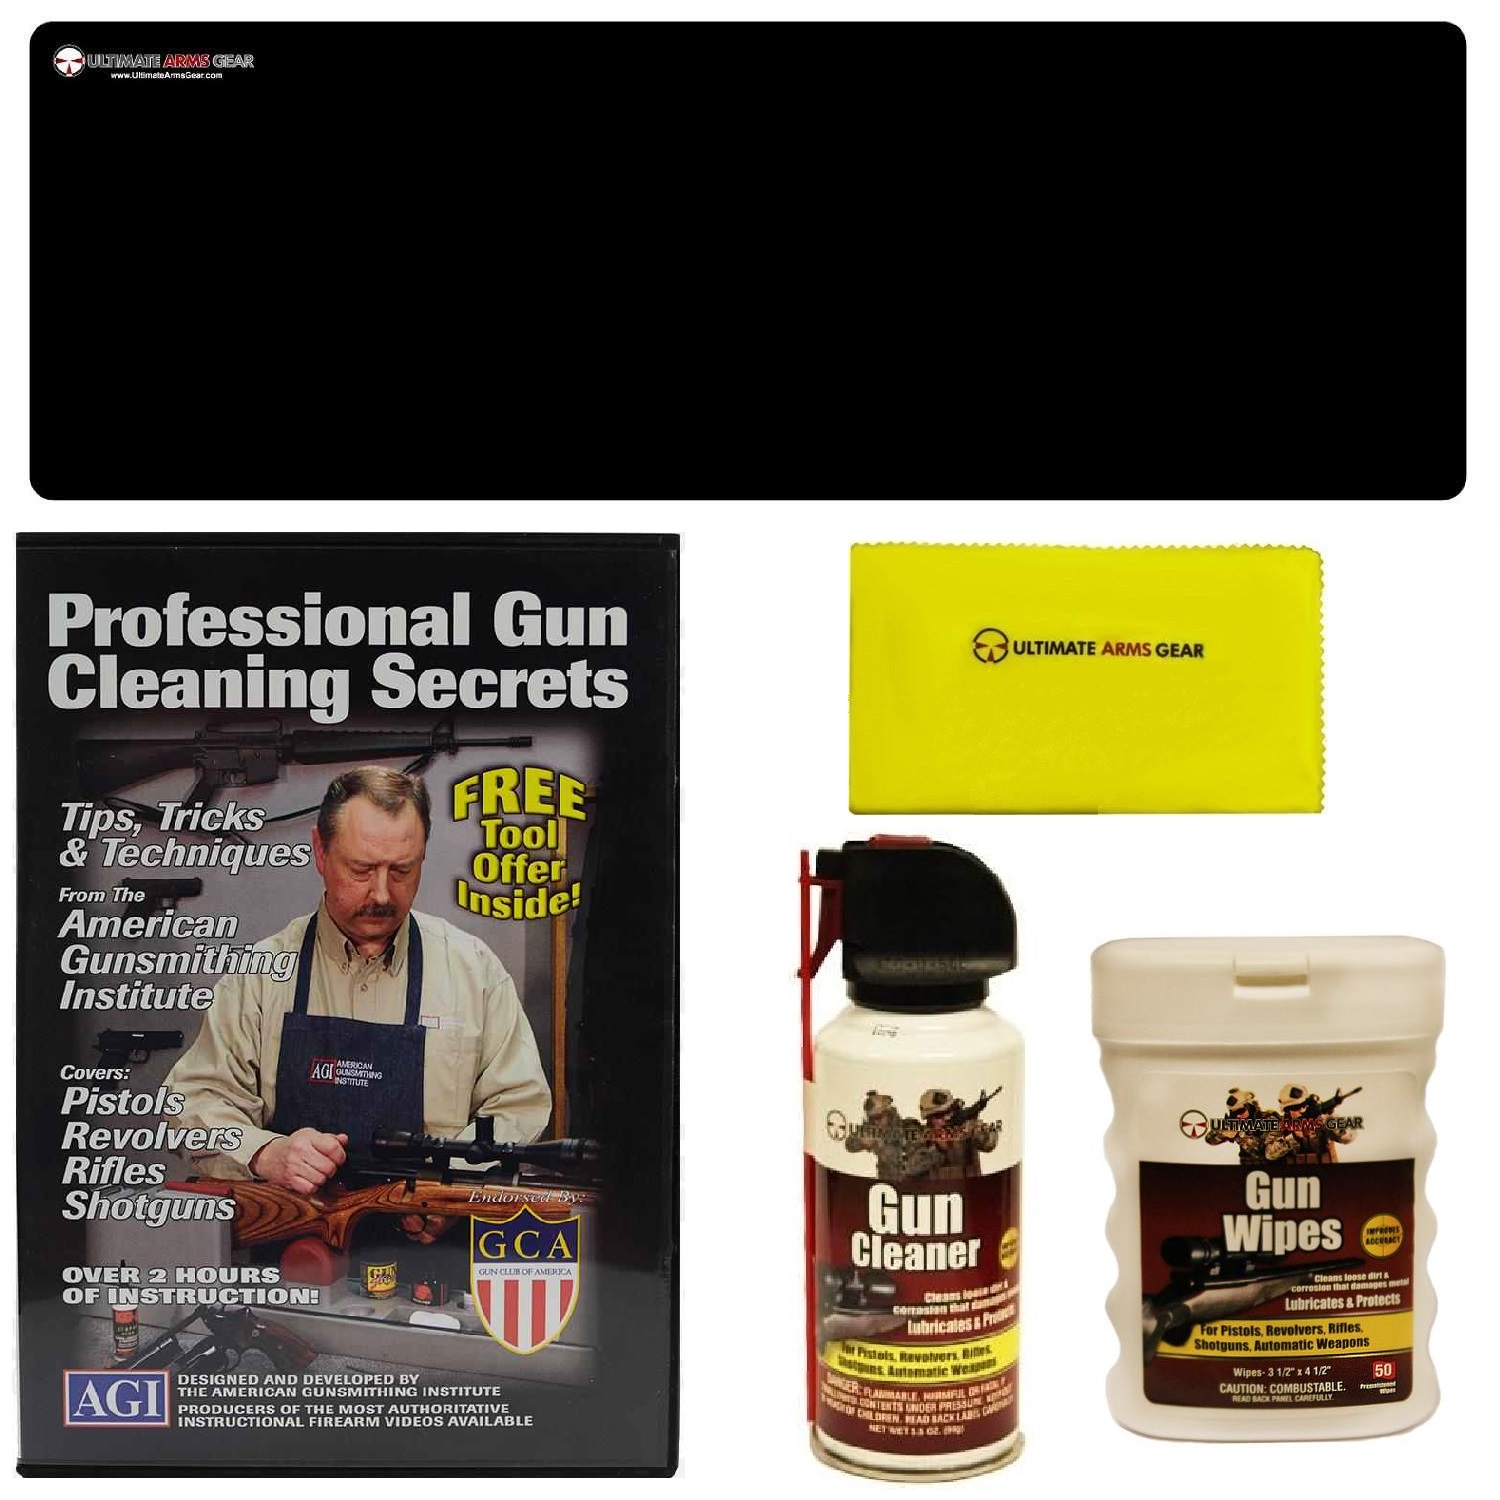 AGI DVD Professional Gun Cleaning Course Secrets SIG SAUER SIG556 5.56 Rifle + Ultimate Arms Gear Gunsmith & Armorer... by